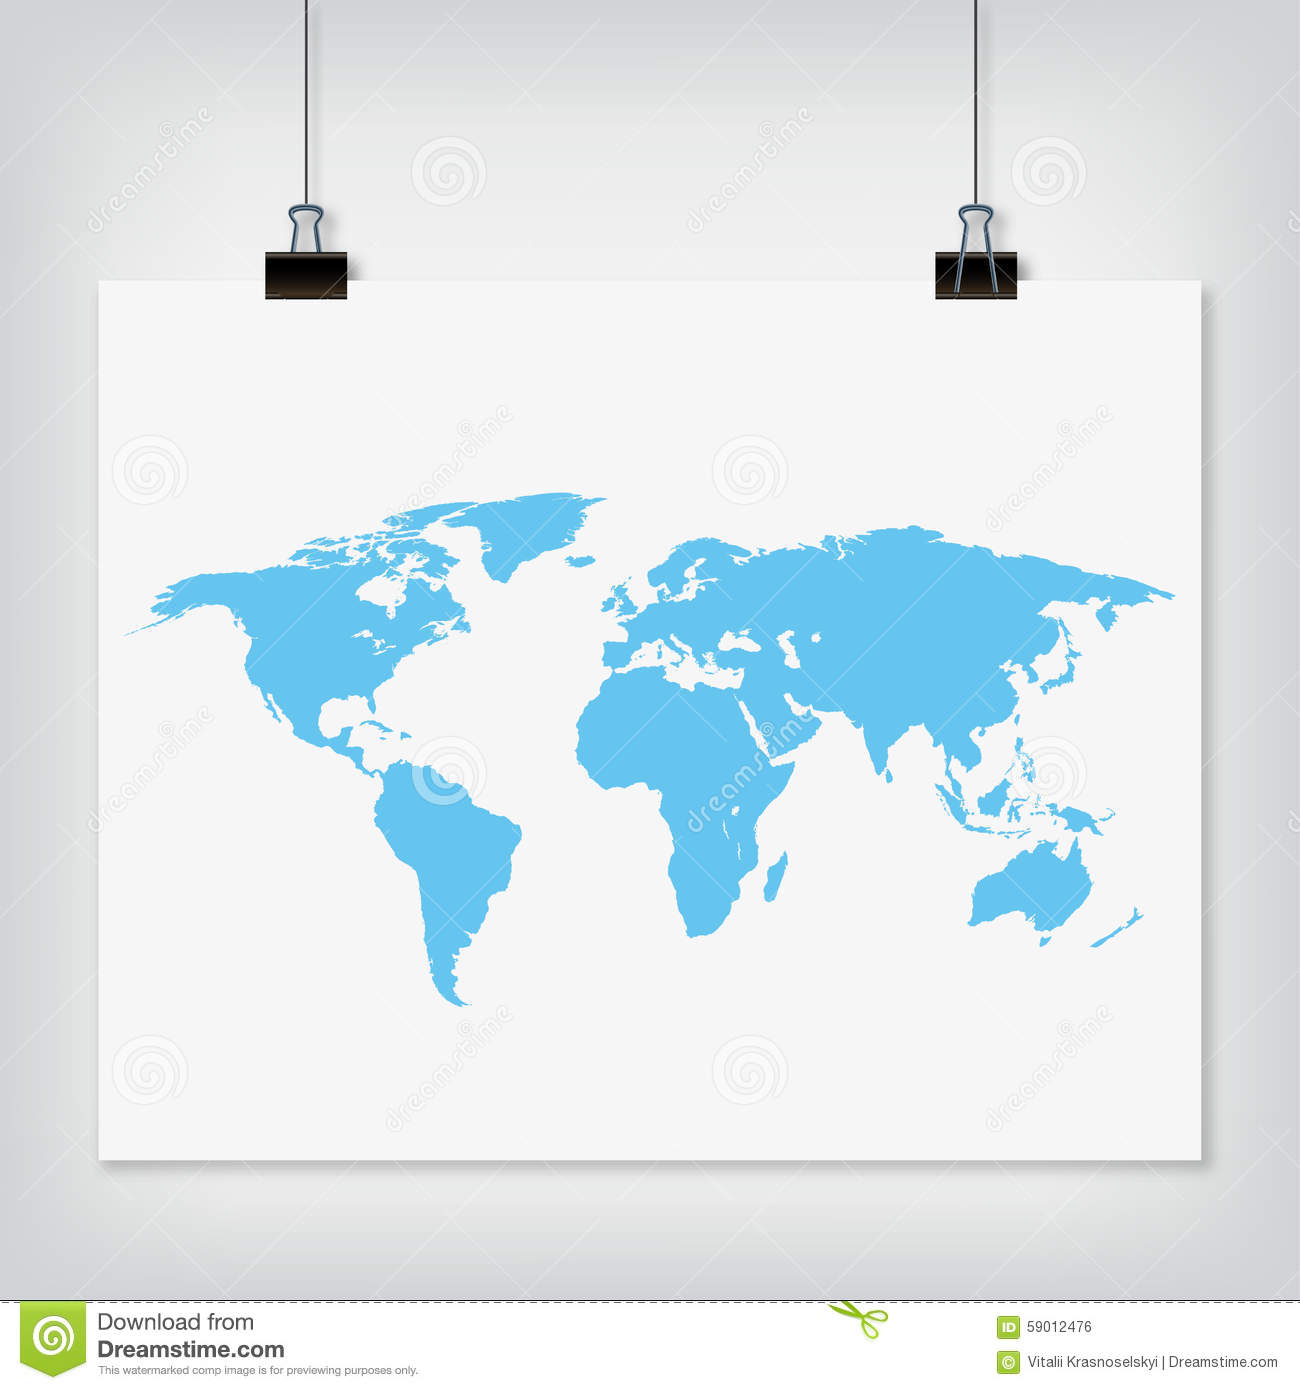 Hanging paper world map blue color sign with shadow stock vector hanging paper world map blue color sign with shadow stock vector illustration of gallery globe 59012476 gumiabroncs Choice Image